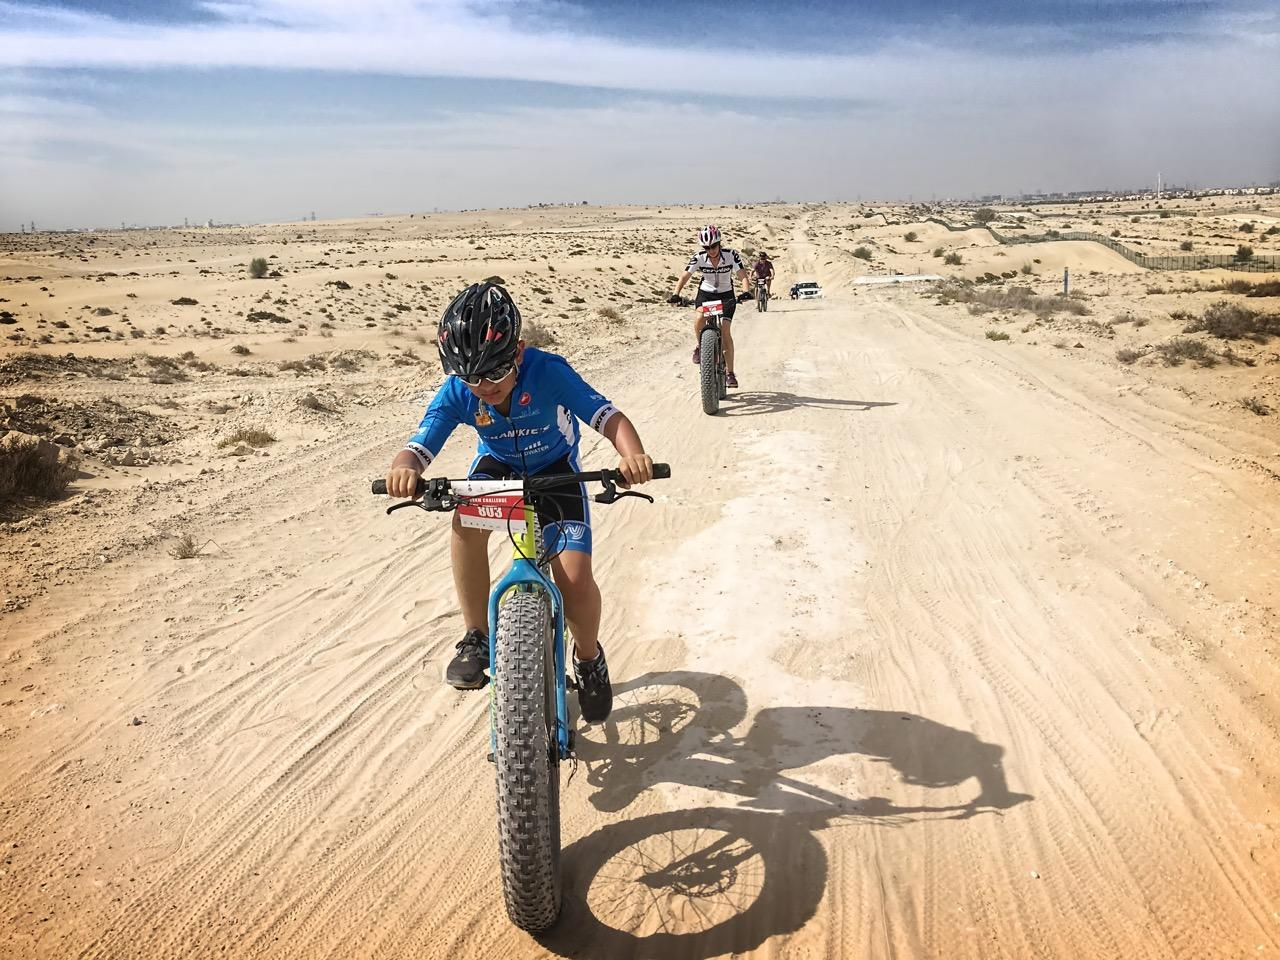 Jason's son Jack taking part in the 20 km off road Pulse Cycling event on his 'Fat Boy'.